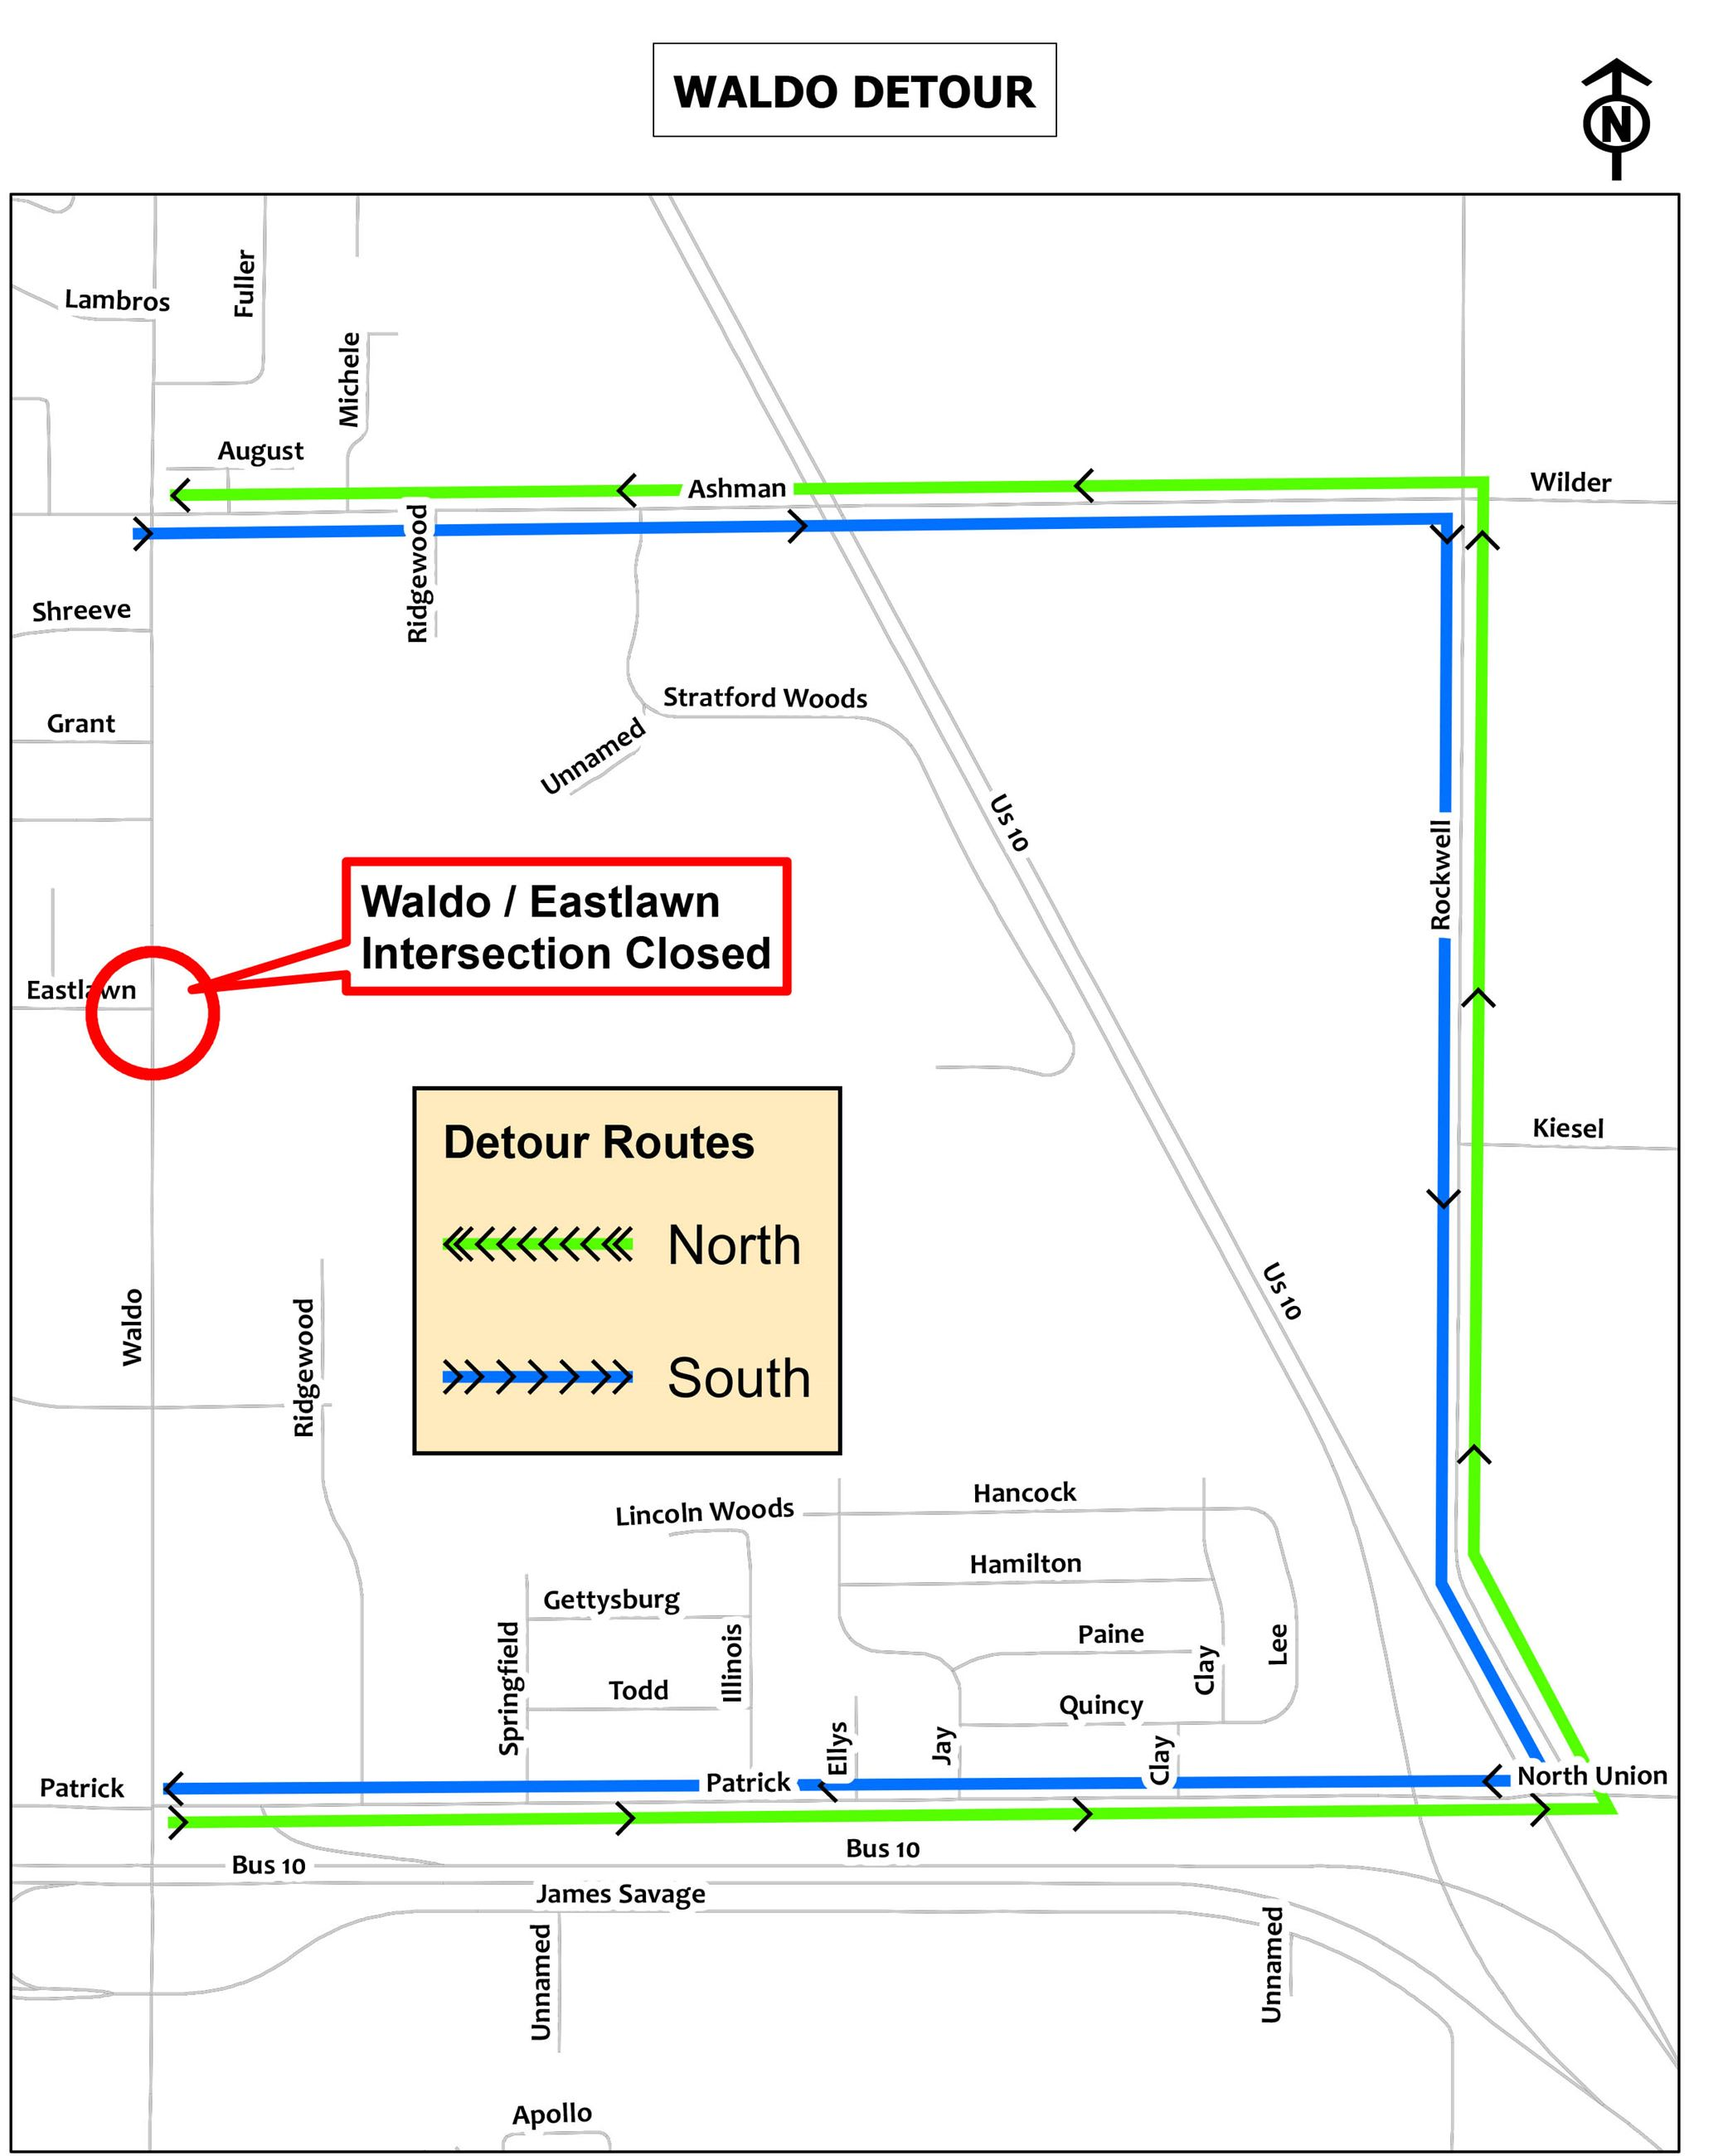 A detour route for Waldo at Eastlawn